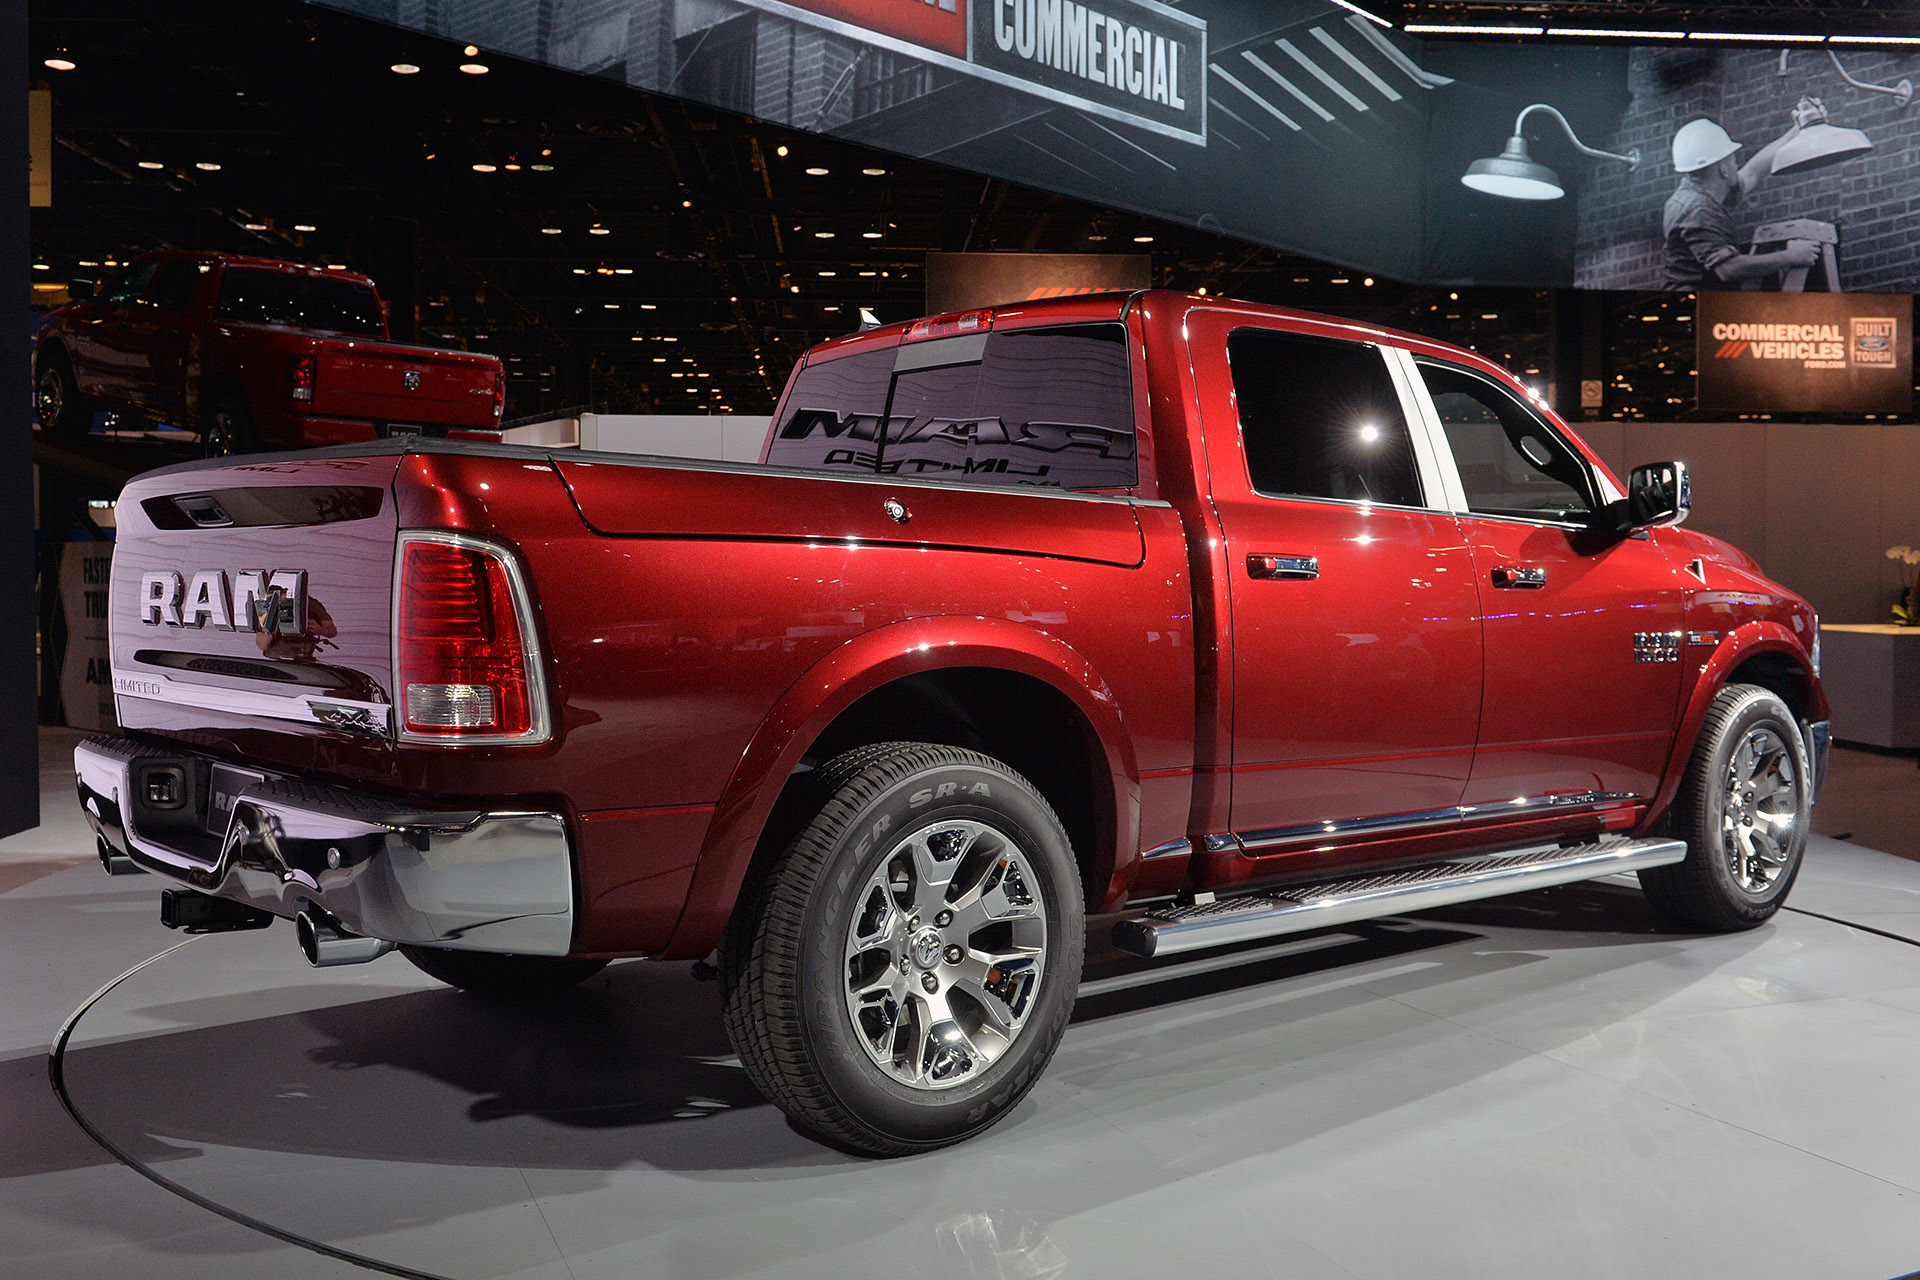 2016 ram laramie limited chicago 2015 photo gallery. Black Bedroom Furniture Sets. Home Design Ideas